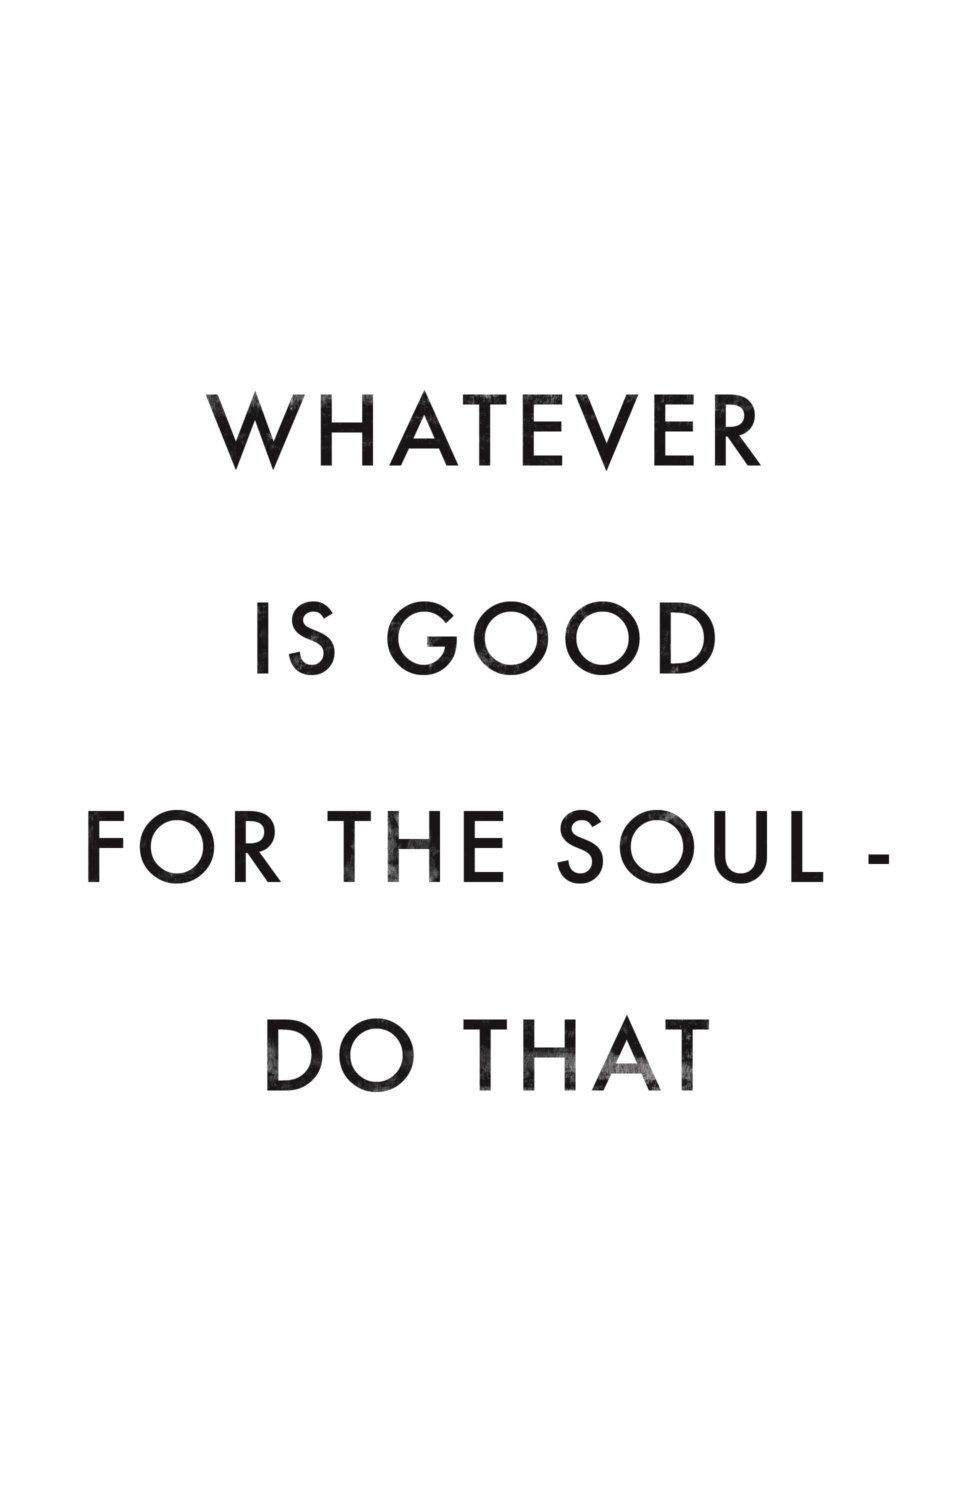 Inspiring words good for the soul poster motivational quote prin wise